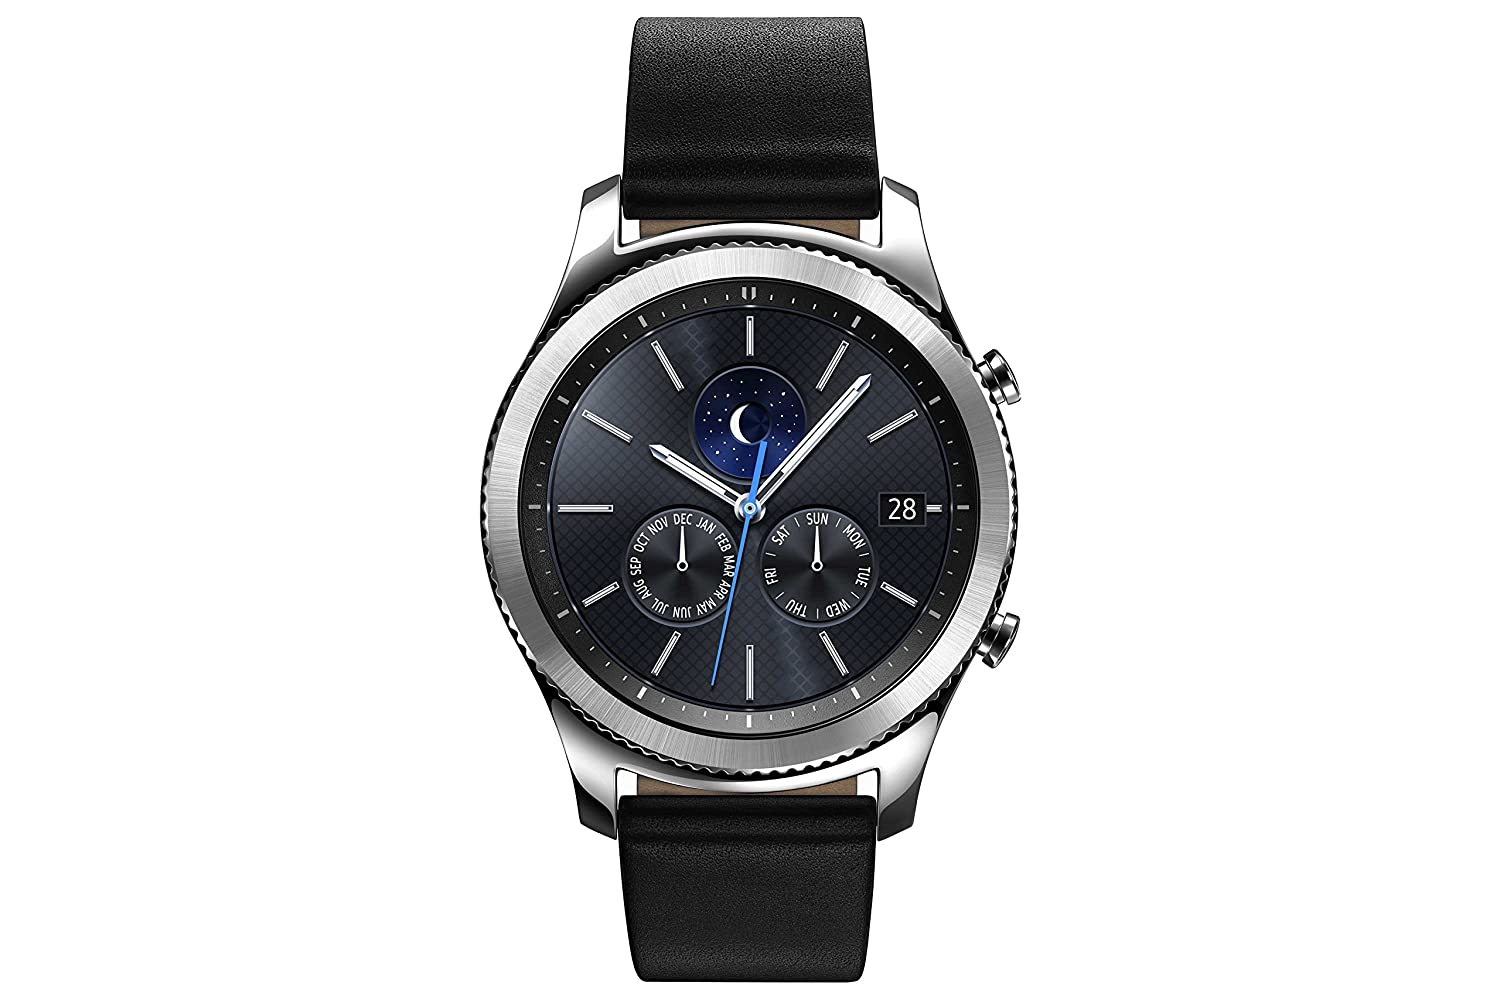 Samsung Gear S3 amazon